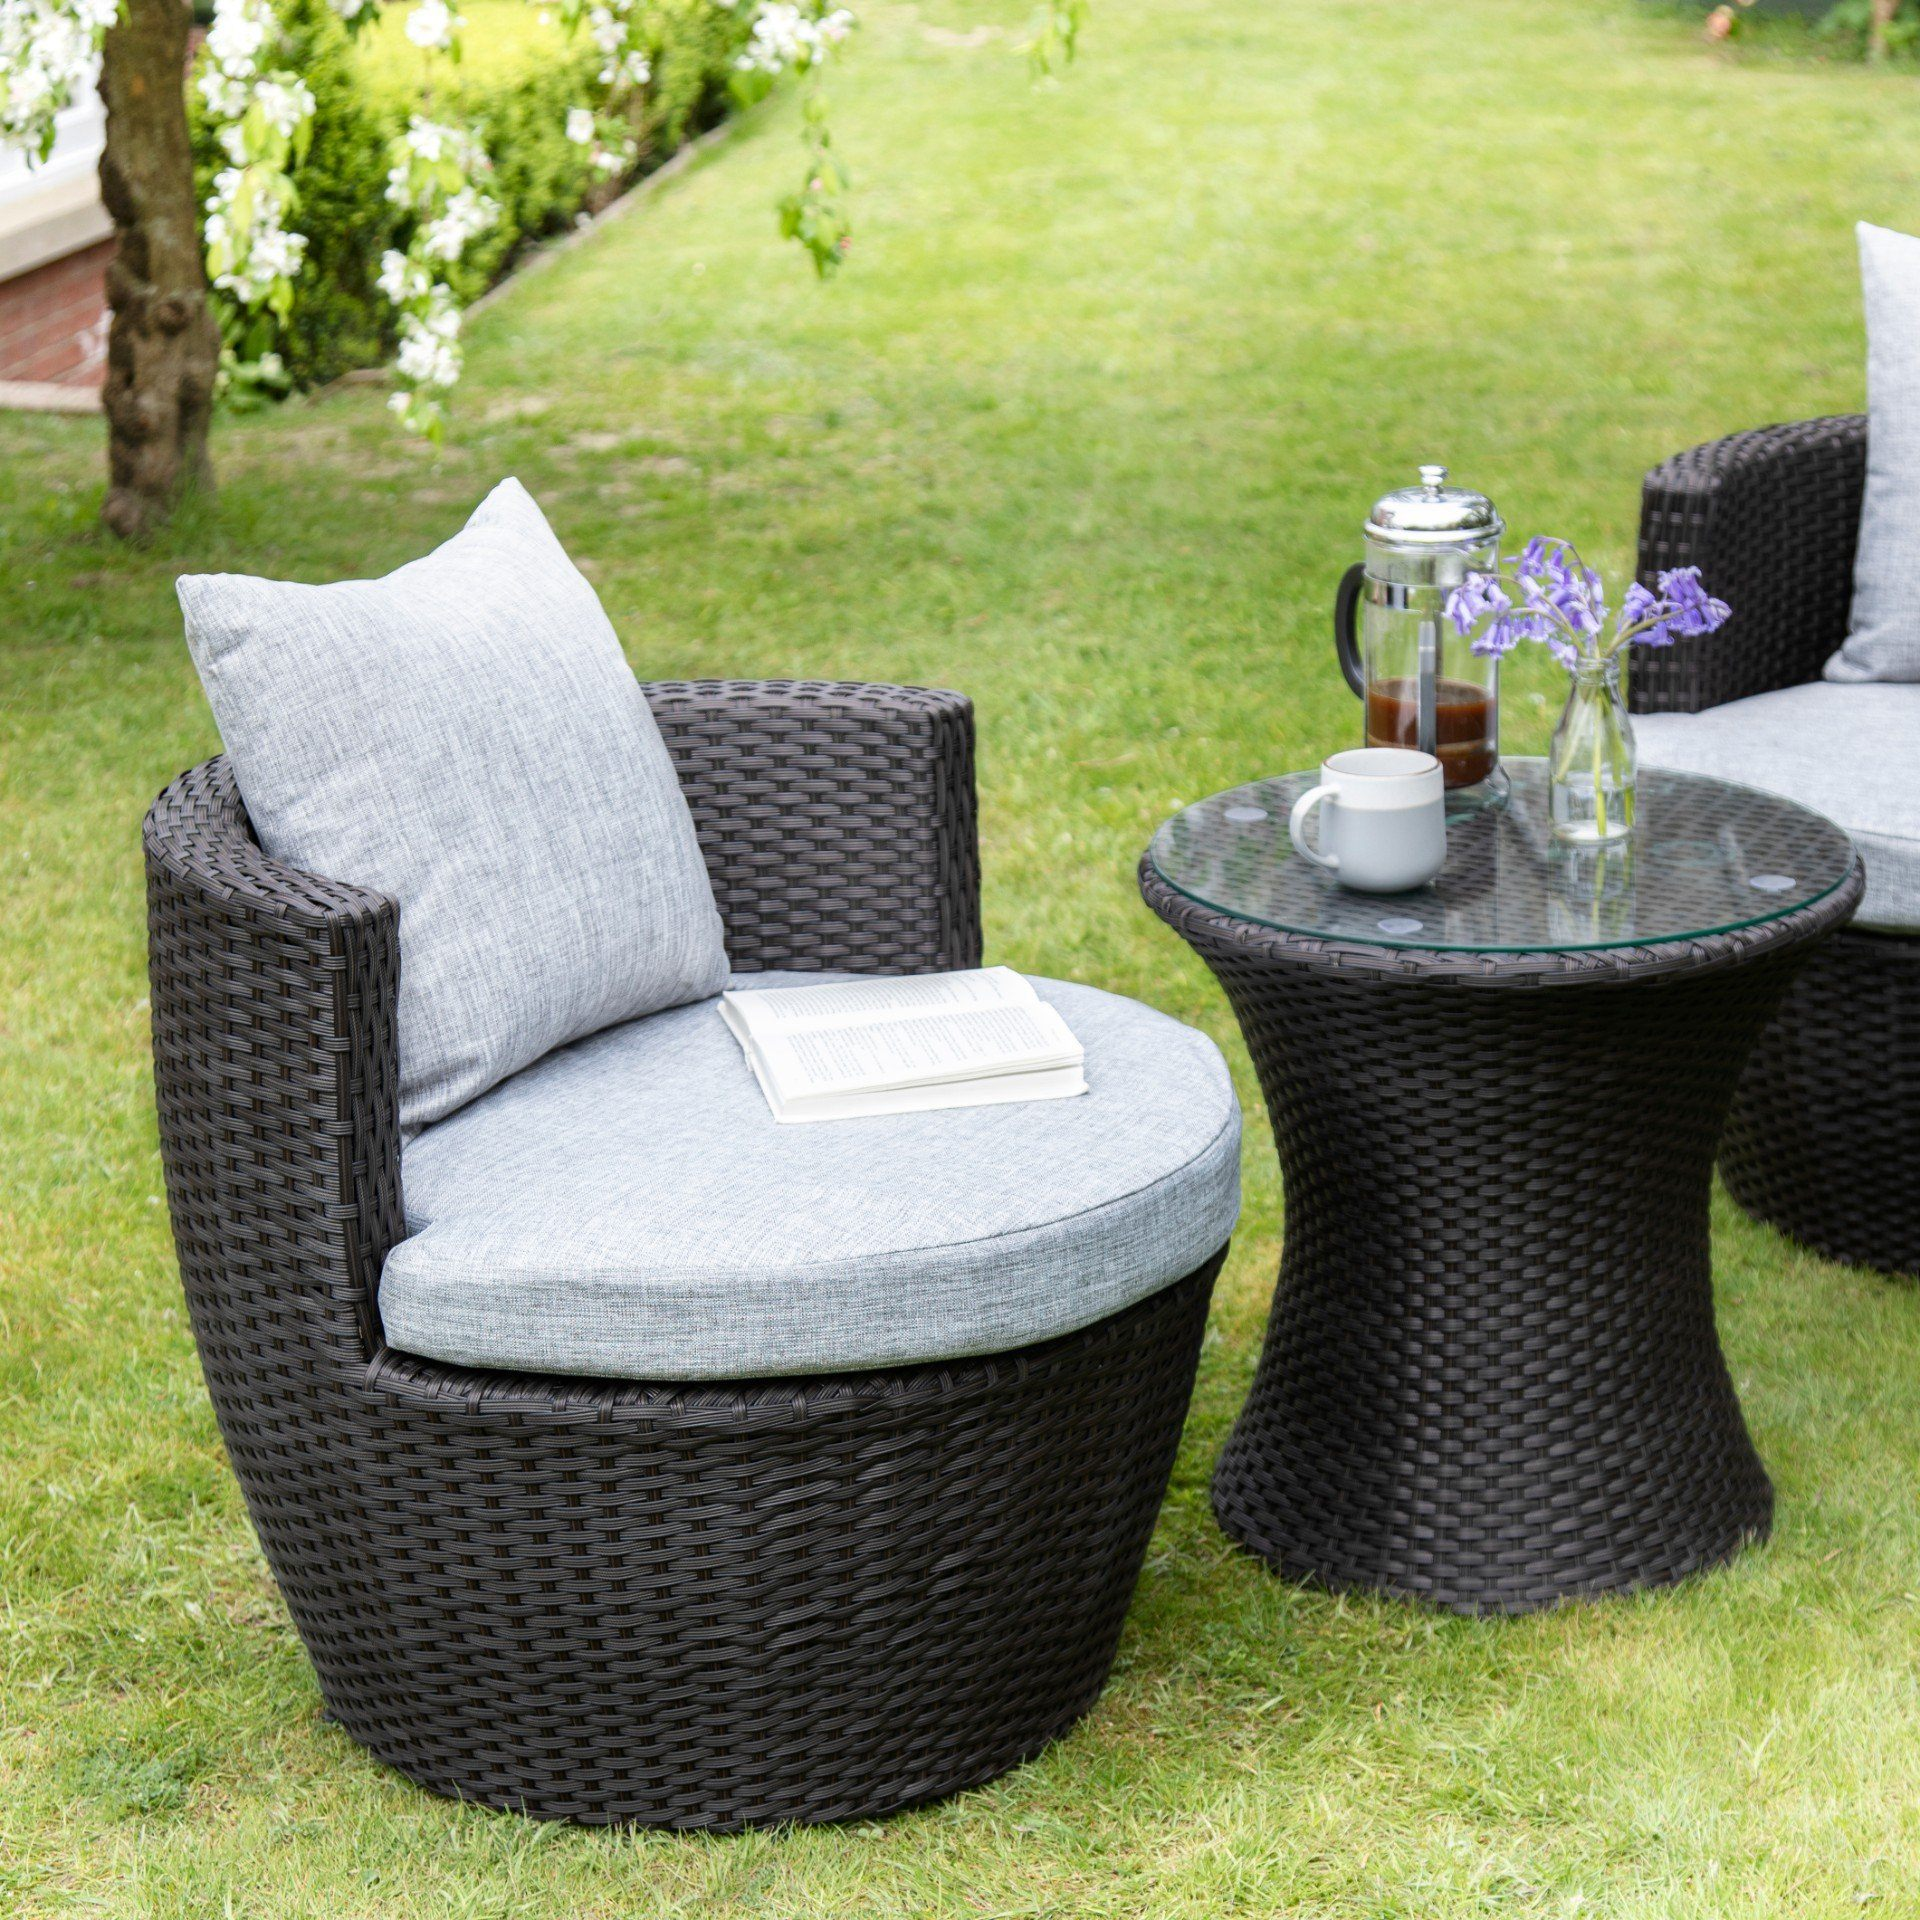 2 Seater Rattan Egg Chair Bistro Set Black Laura James